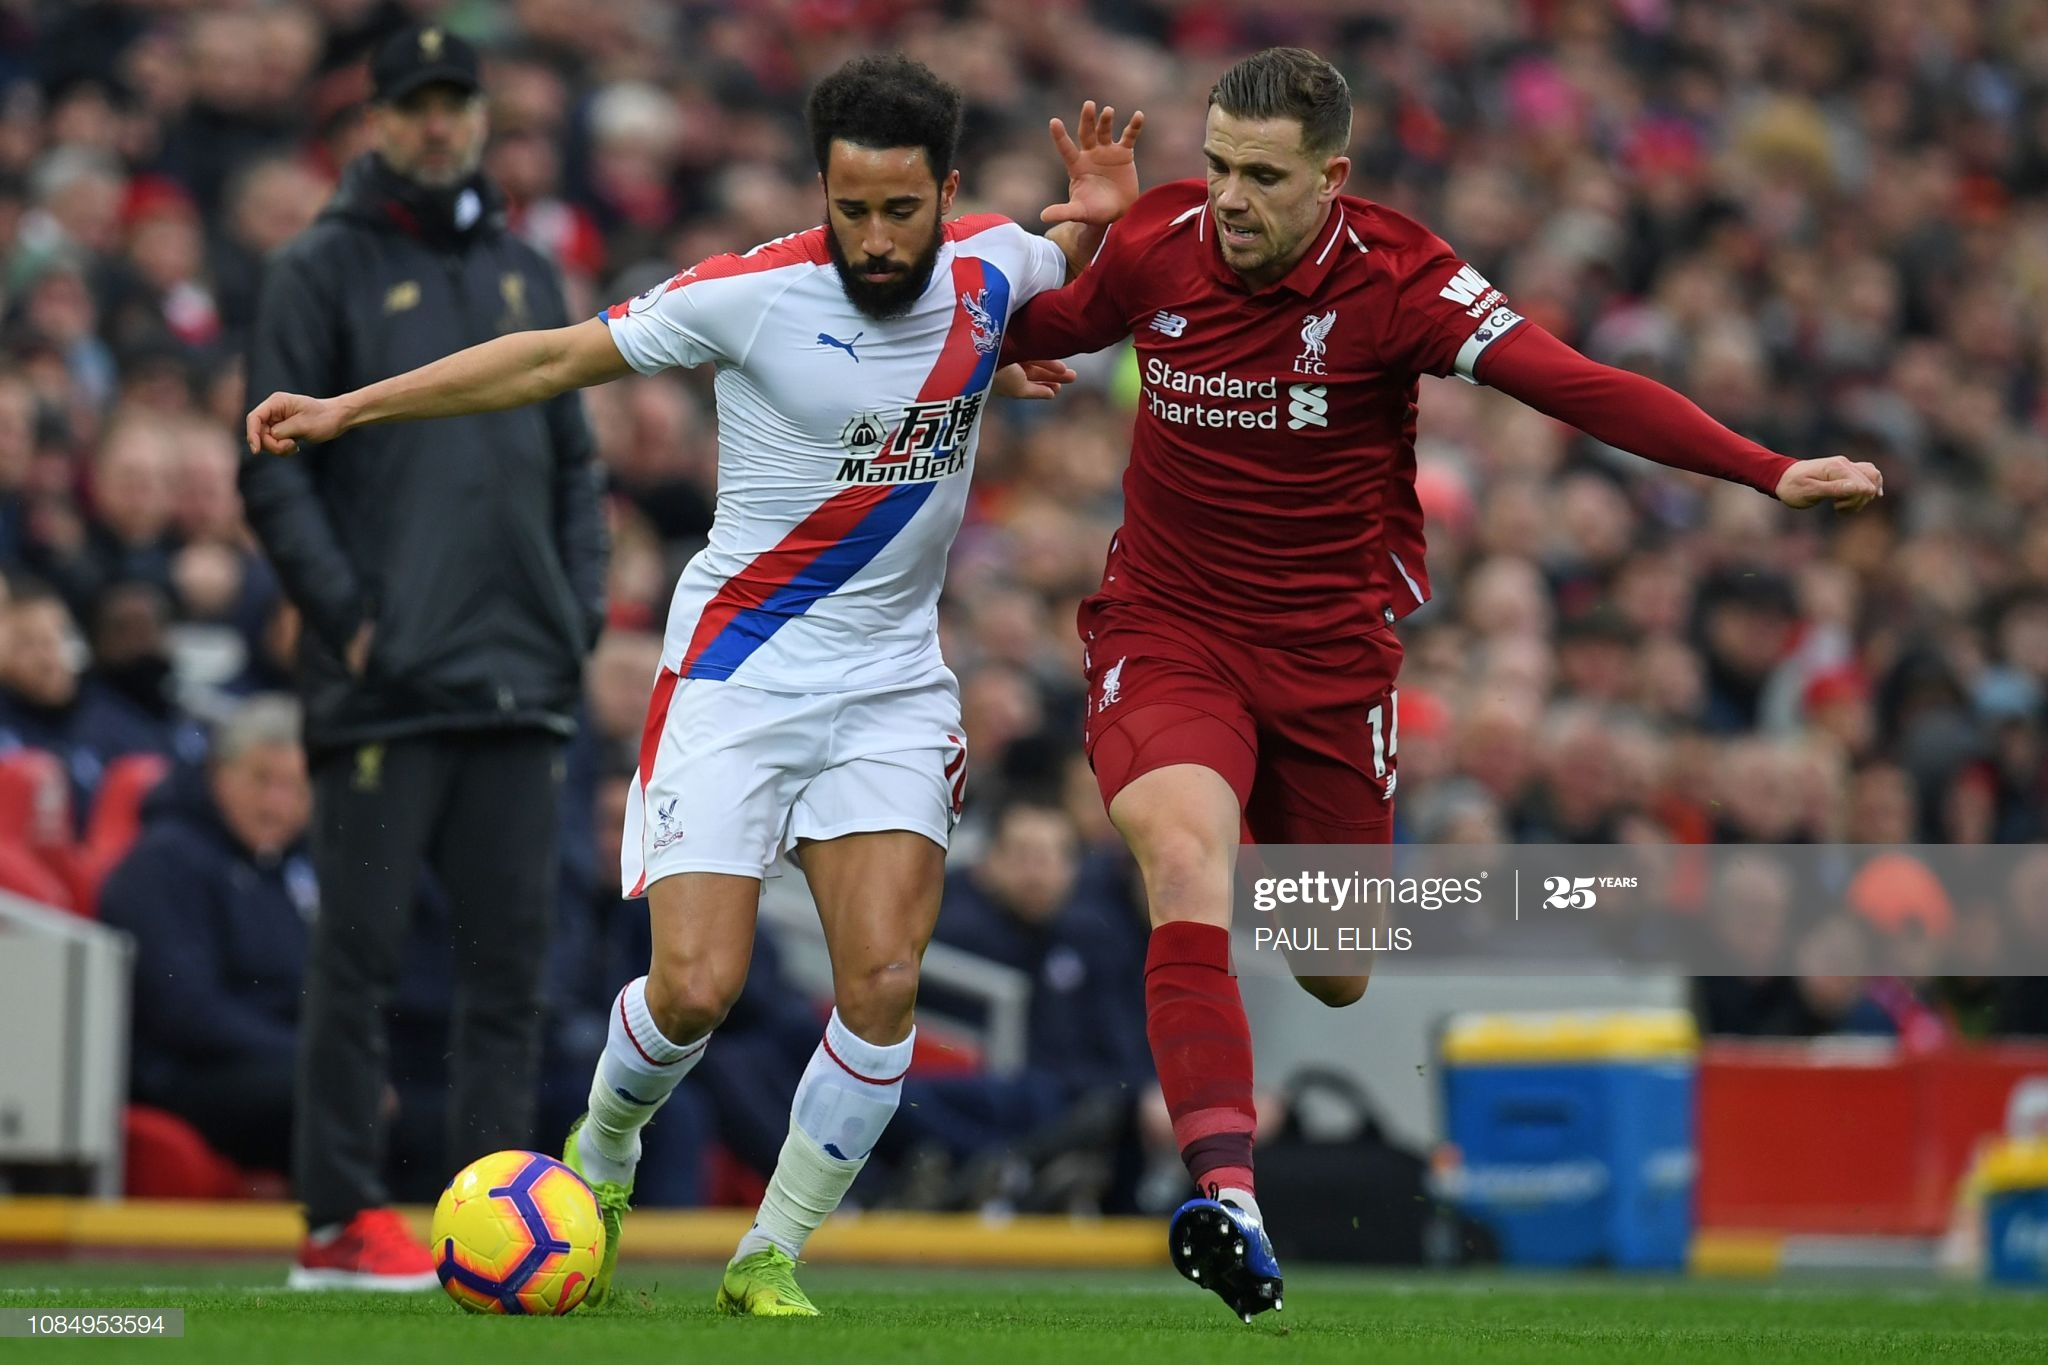 Crystal Palace's English midfielder Andros Townsend (L) vies with Liverpool's English midfielder Jordan Henderson (R) during the English Premier League football match between Liverpool and Crystal Palace at Anfield in Liverpool, north west England on January 19, 2019. (Photo by Paul ELLIS / AFP) / RESTRICTED TO EDITORIAL USE. No use with unauthorized audio, video, data, fixture lists, club/league logos or 'live' services. Online in-match use limited to 120 images. An additional 40 images may be used in extra time. No video emulation. Social media in-match use limited to 120 images. An additional 40 images may be used in extra time. No use in betting publications, games or single club/league/player publications. /         (Photo credit should read PAUL ELLIS/AFP via Getty Images)